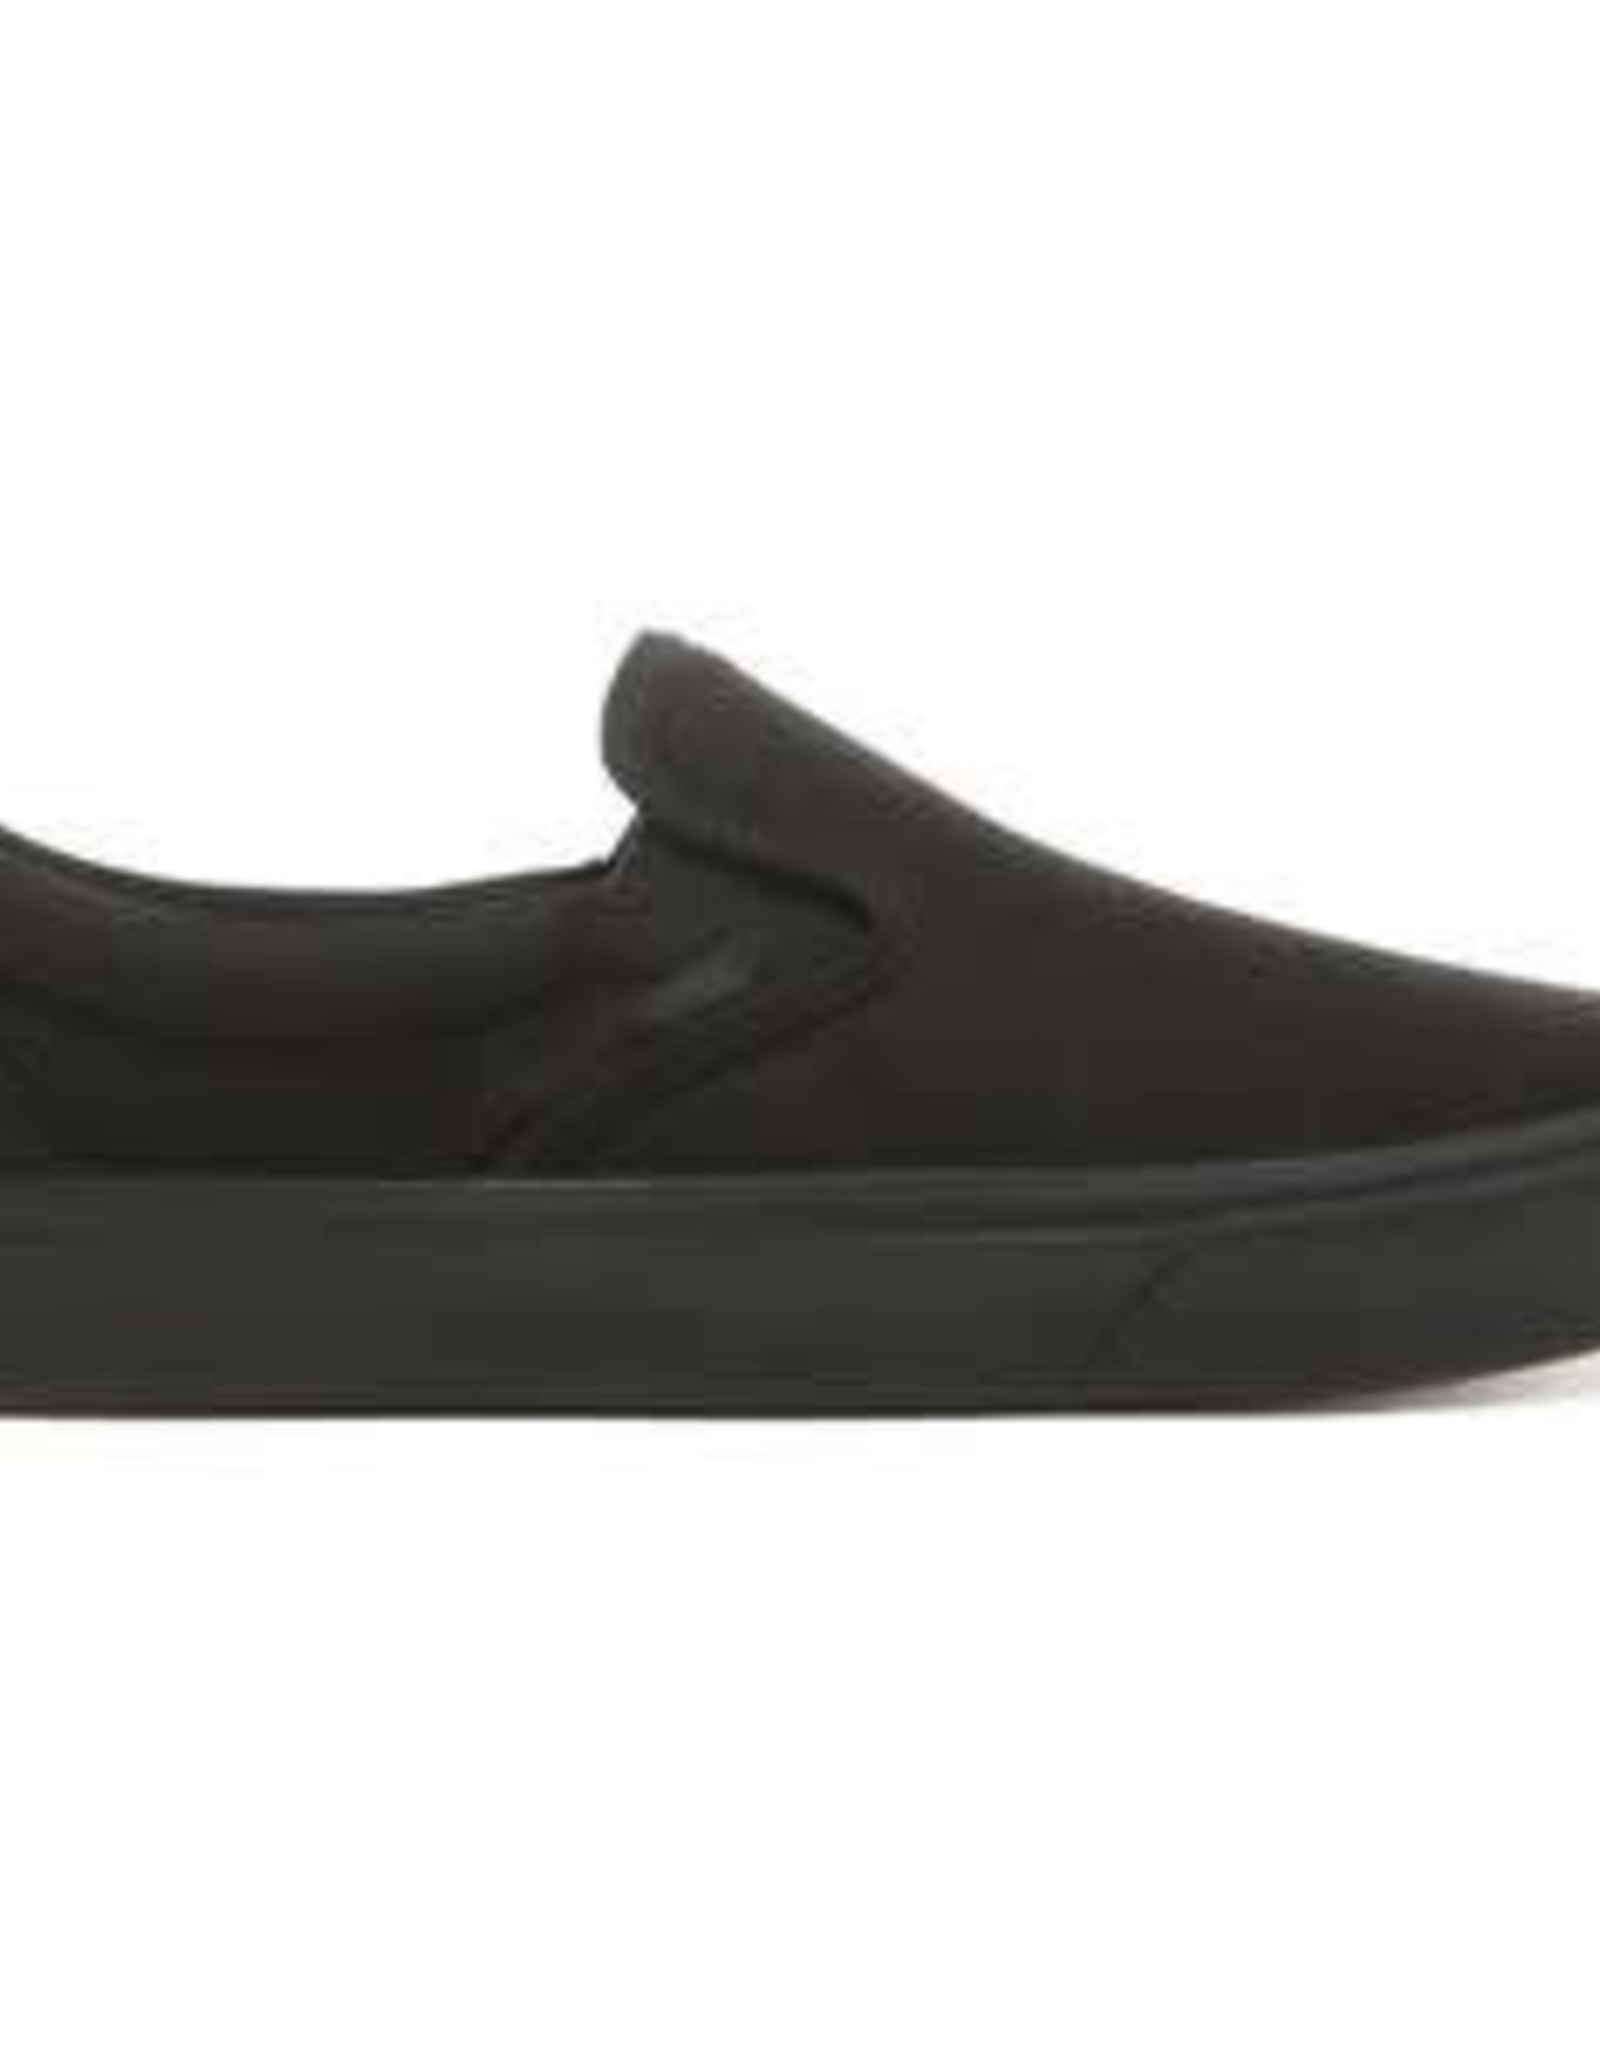 Vans Vans - COMFYCUSH SLIP-ON - Blk/Blk -